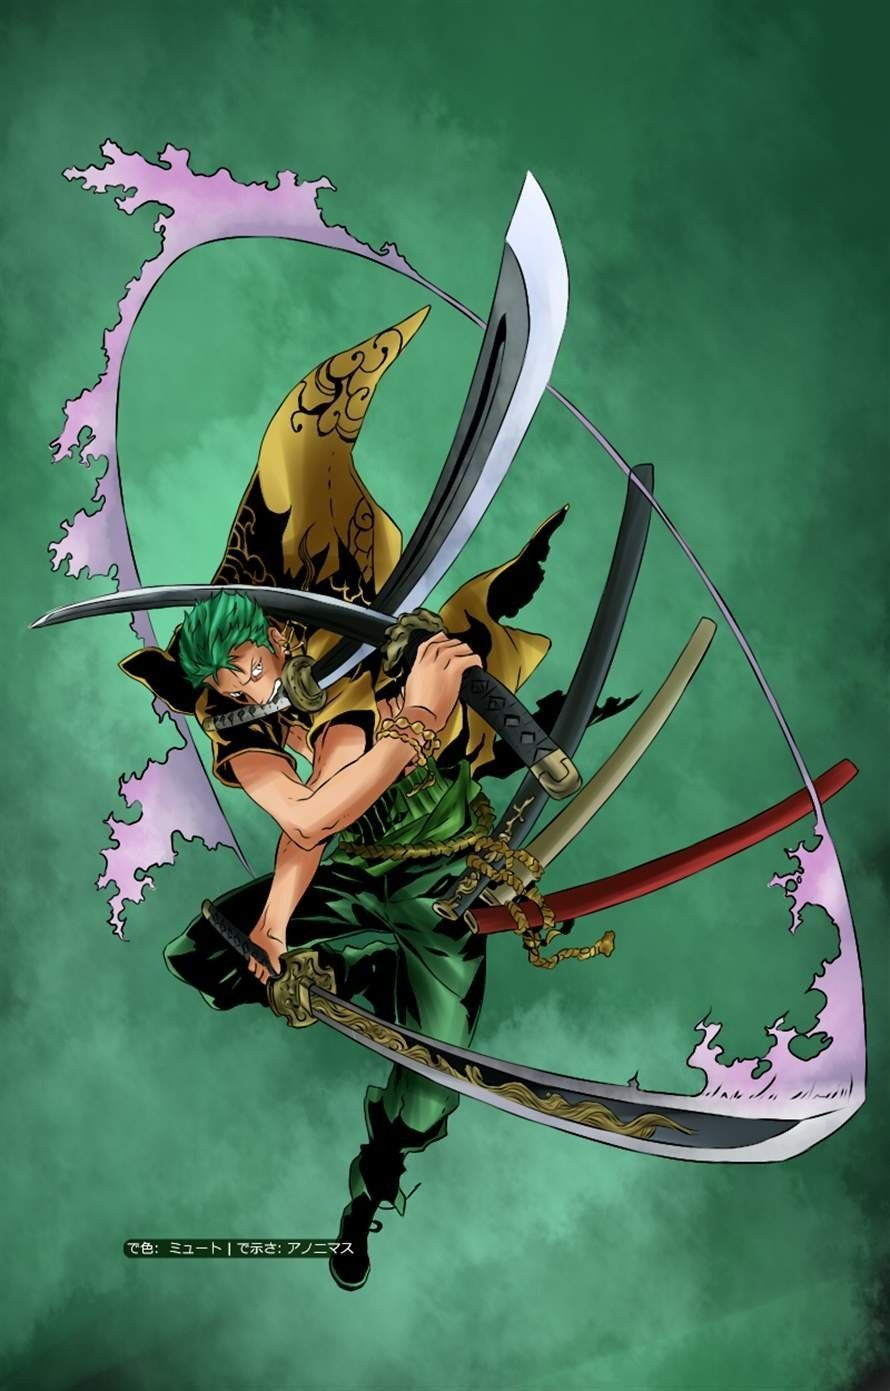 One Piece Zoro Wallpaper One Piece Wallpaper Roronoa Zoro 3051605 Hd Wallpaper Backgrounds Download